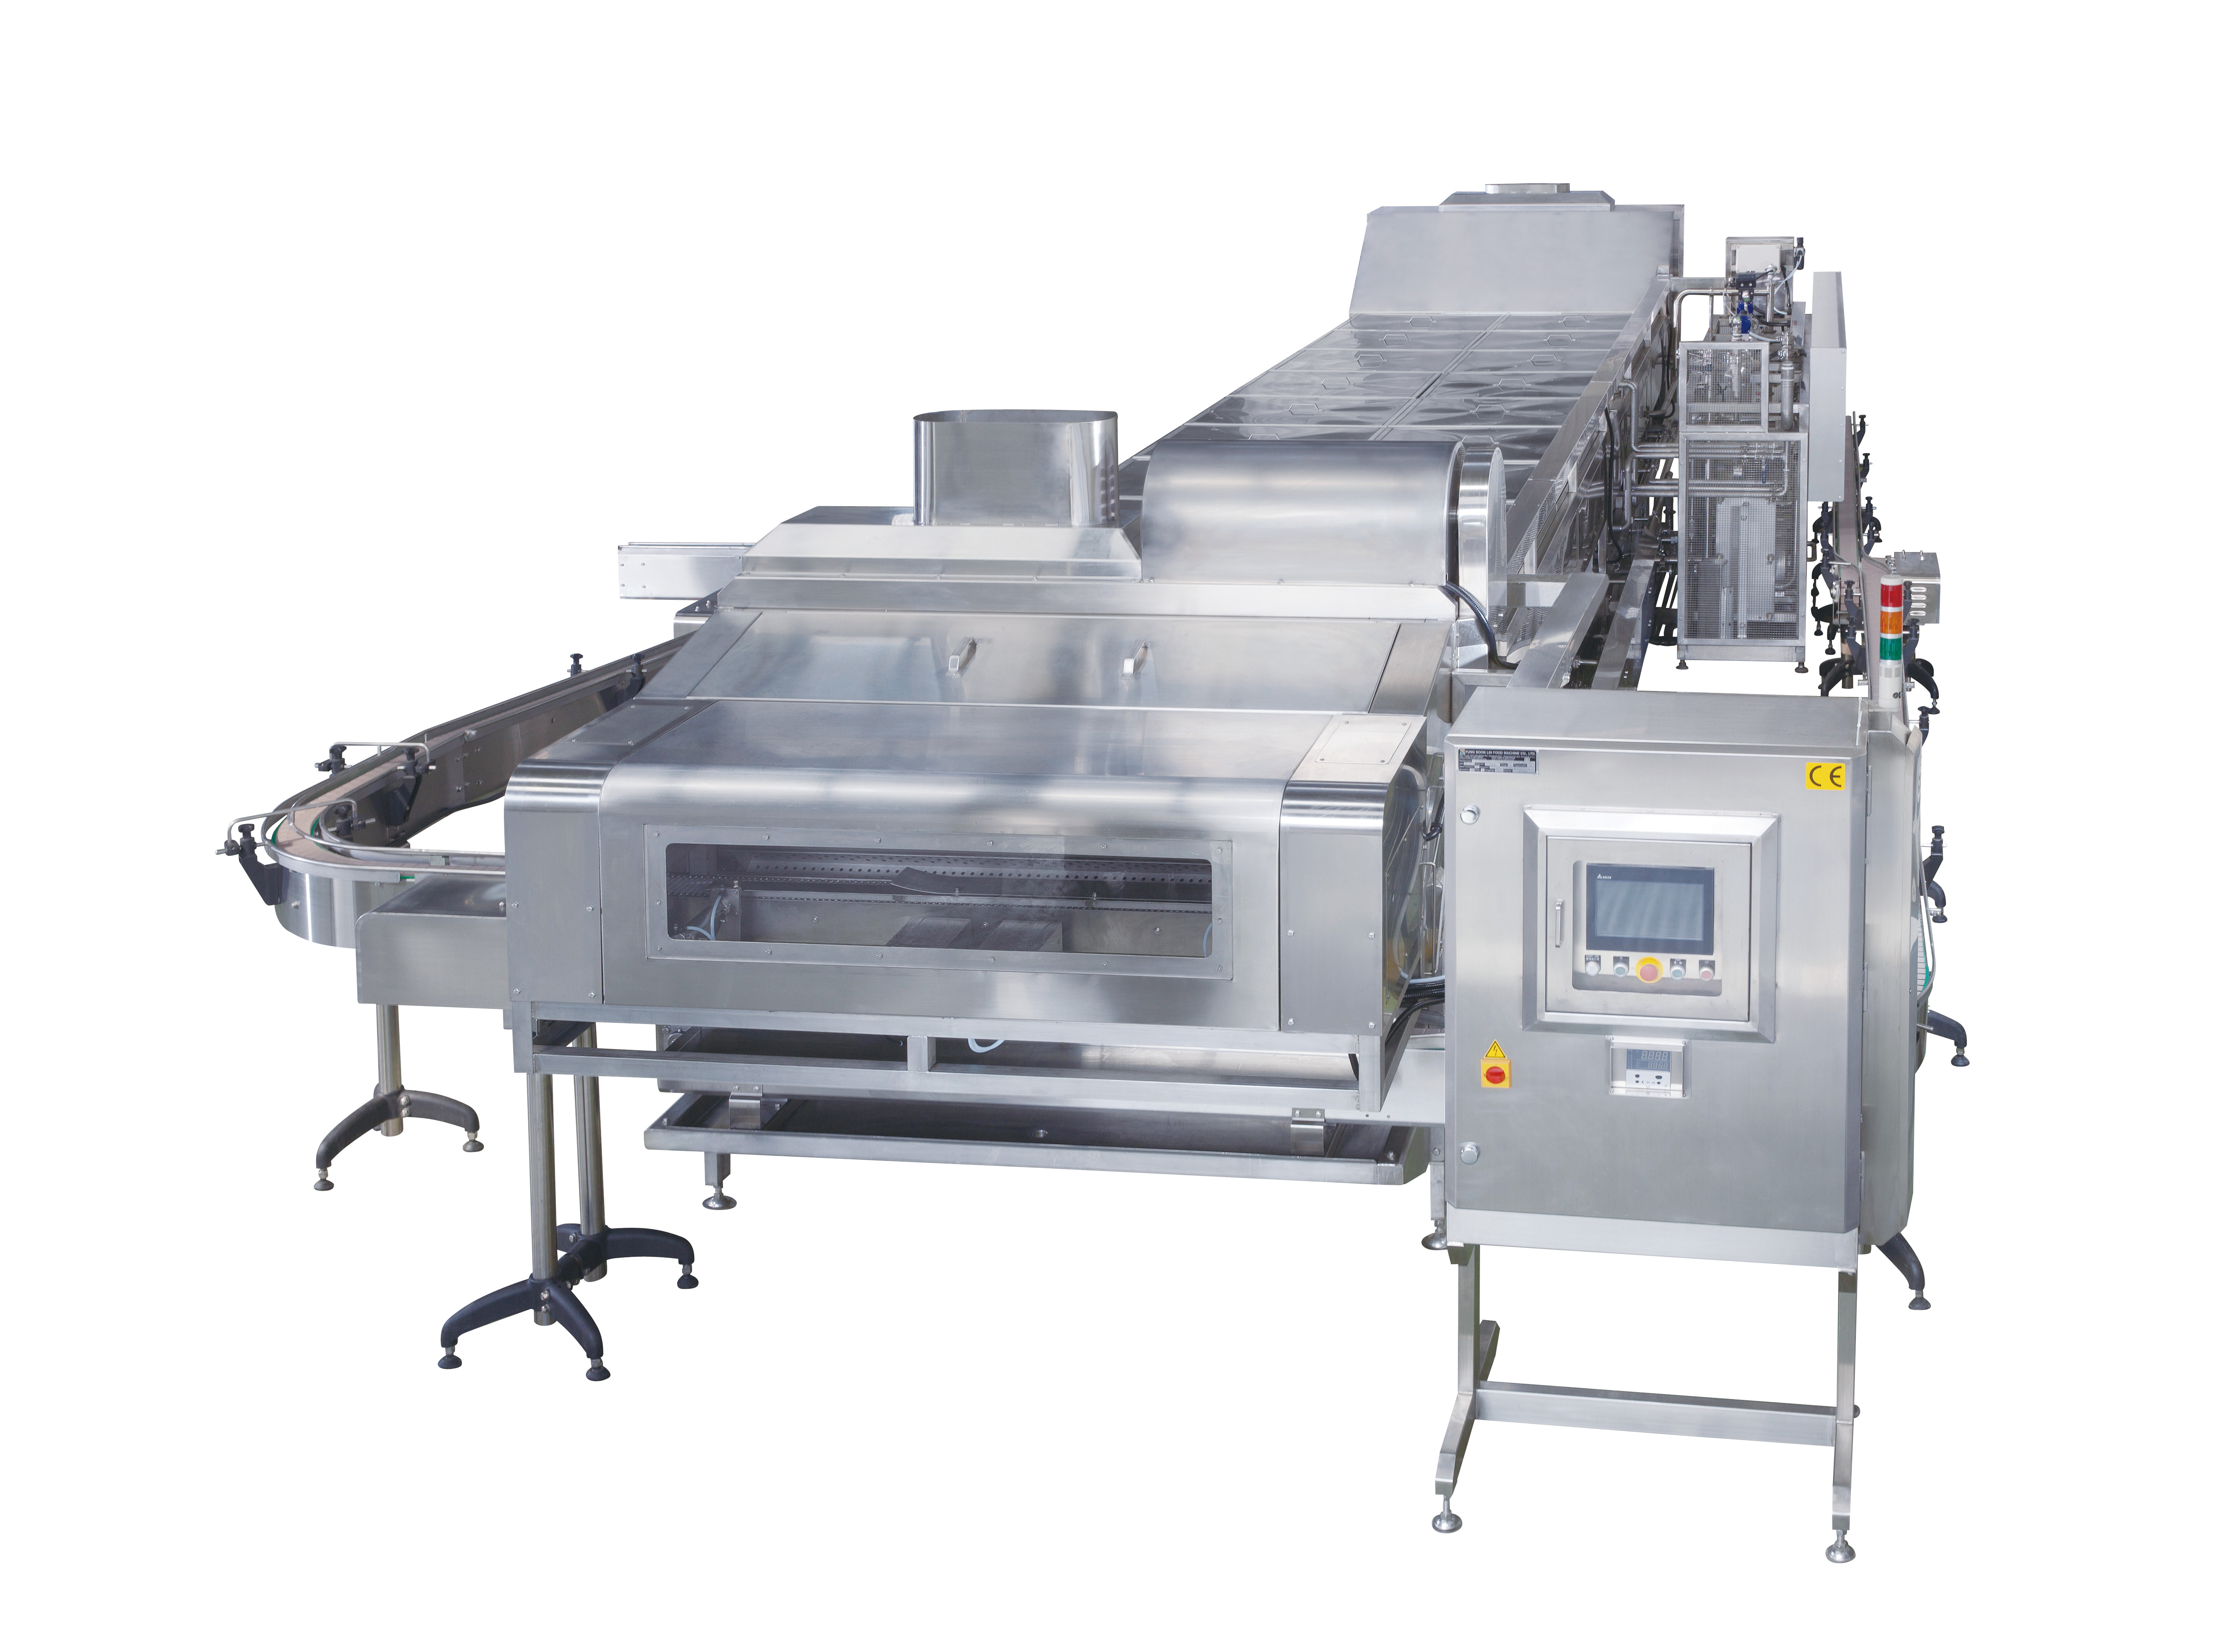 Pasteurizing and Cooling Equipment - Pasteurizating and Cooling Equipment